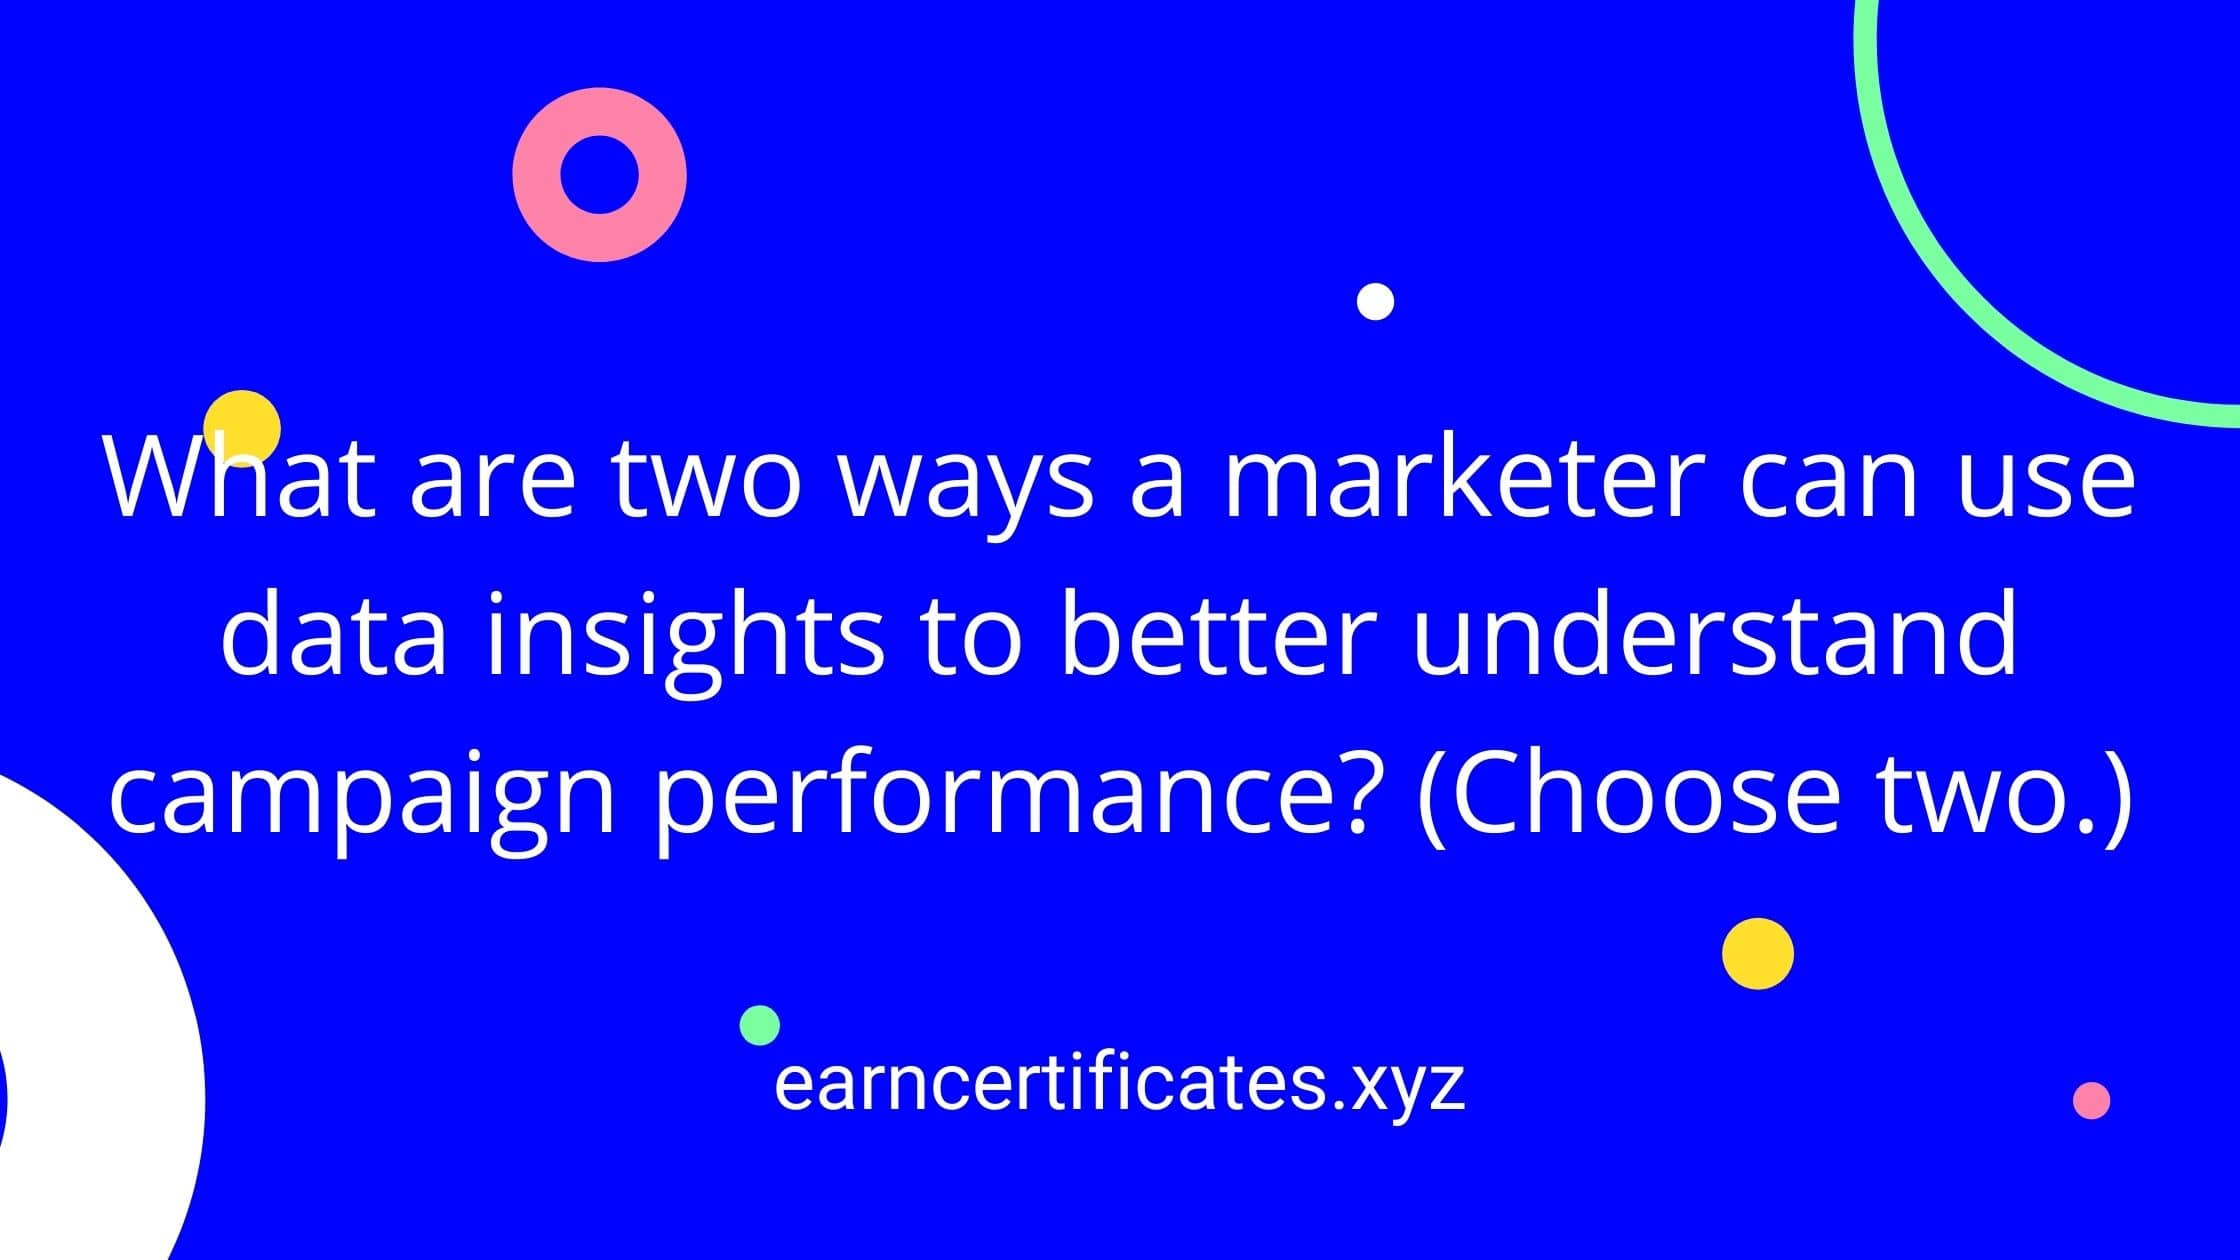 What are two ways a marketer can use data insights to better understand campaign performance? (Choose two.)